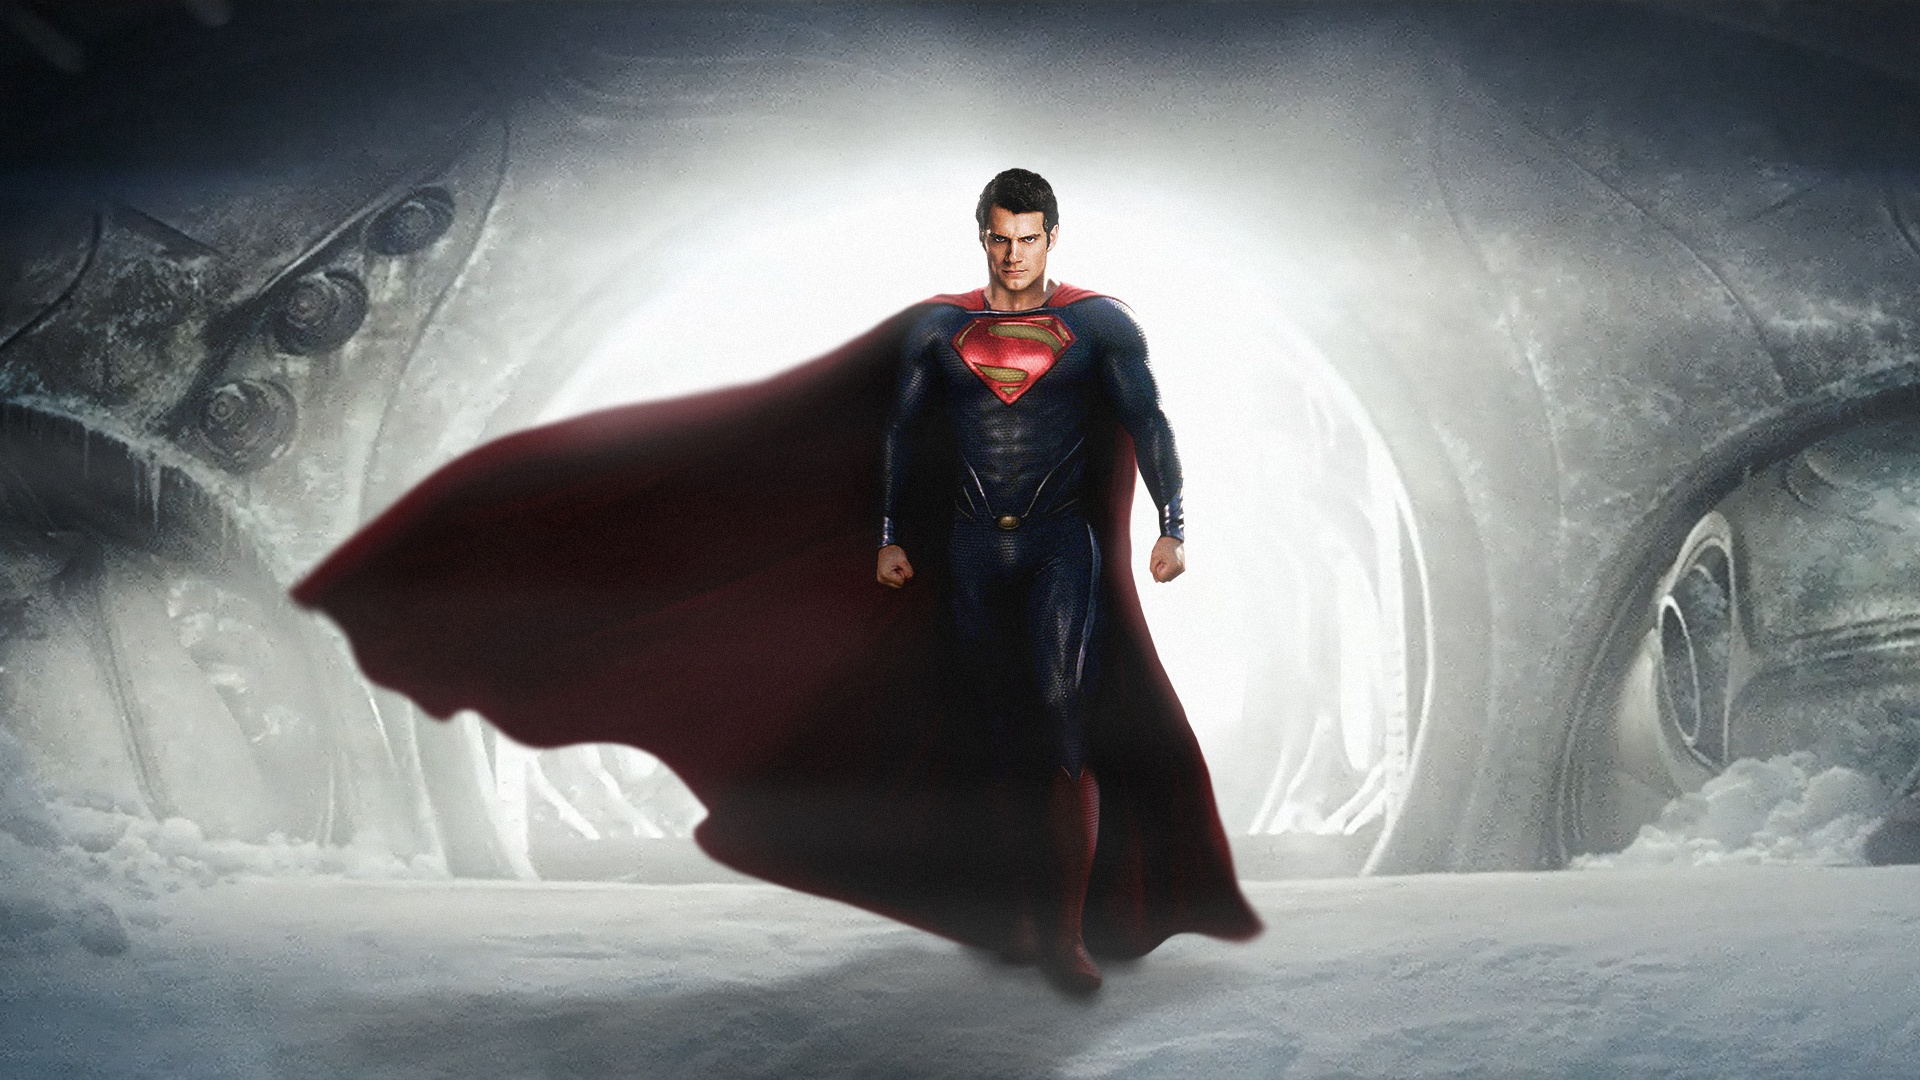 of Steel HD Wallpaper in high resolution for Get Man of Steel HD 1920x1080